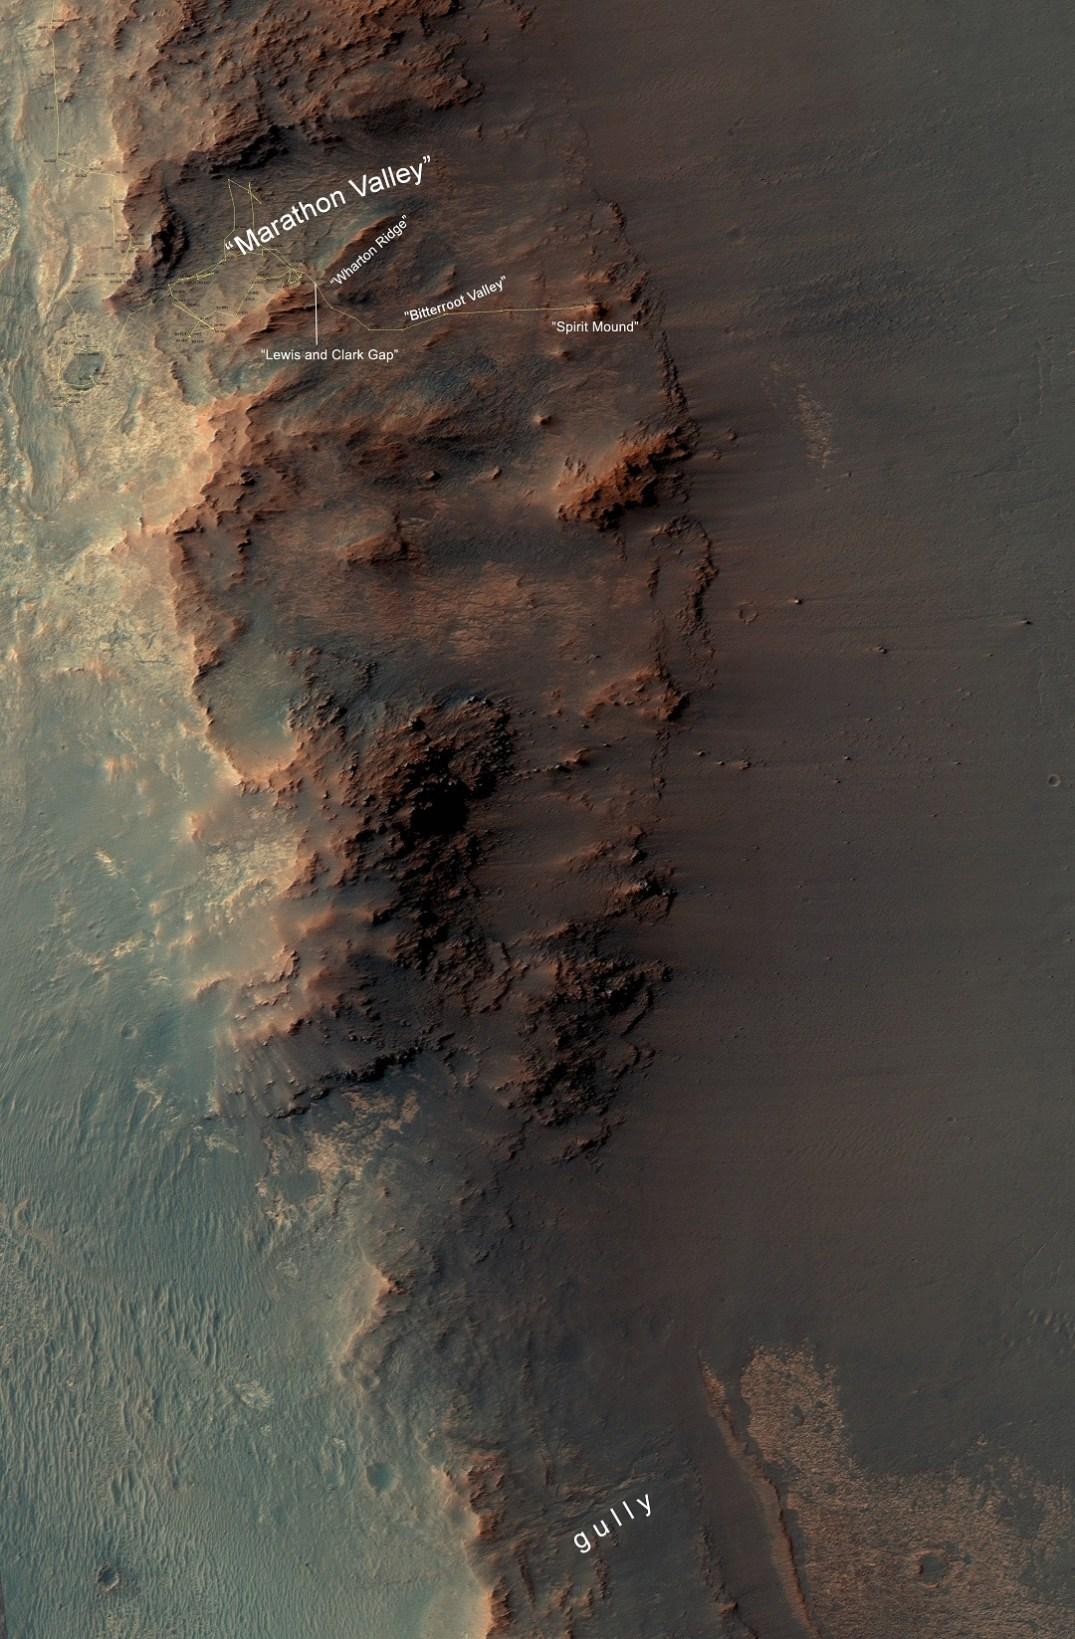 http://www.nasa.gov/sites/default/files/thumbnails/image/pia20854_gully_map.jpg